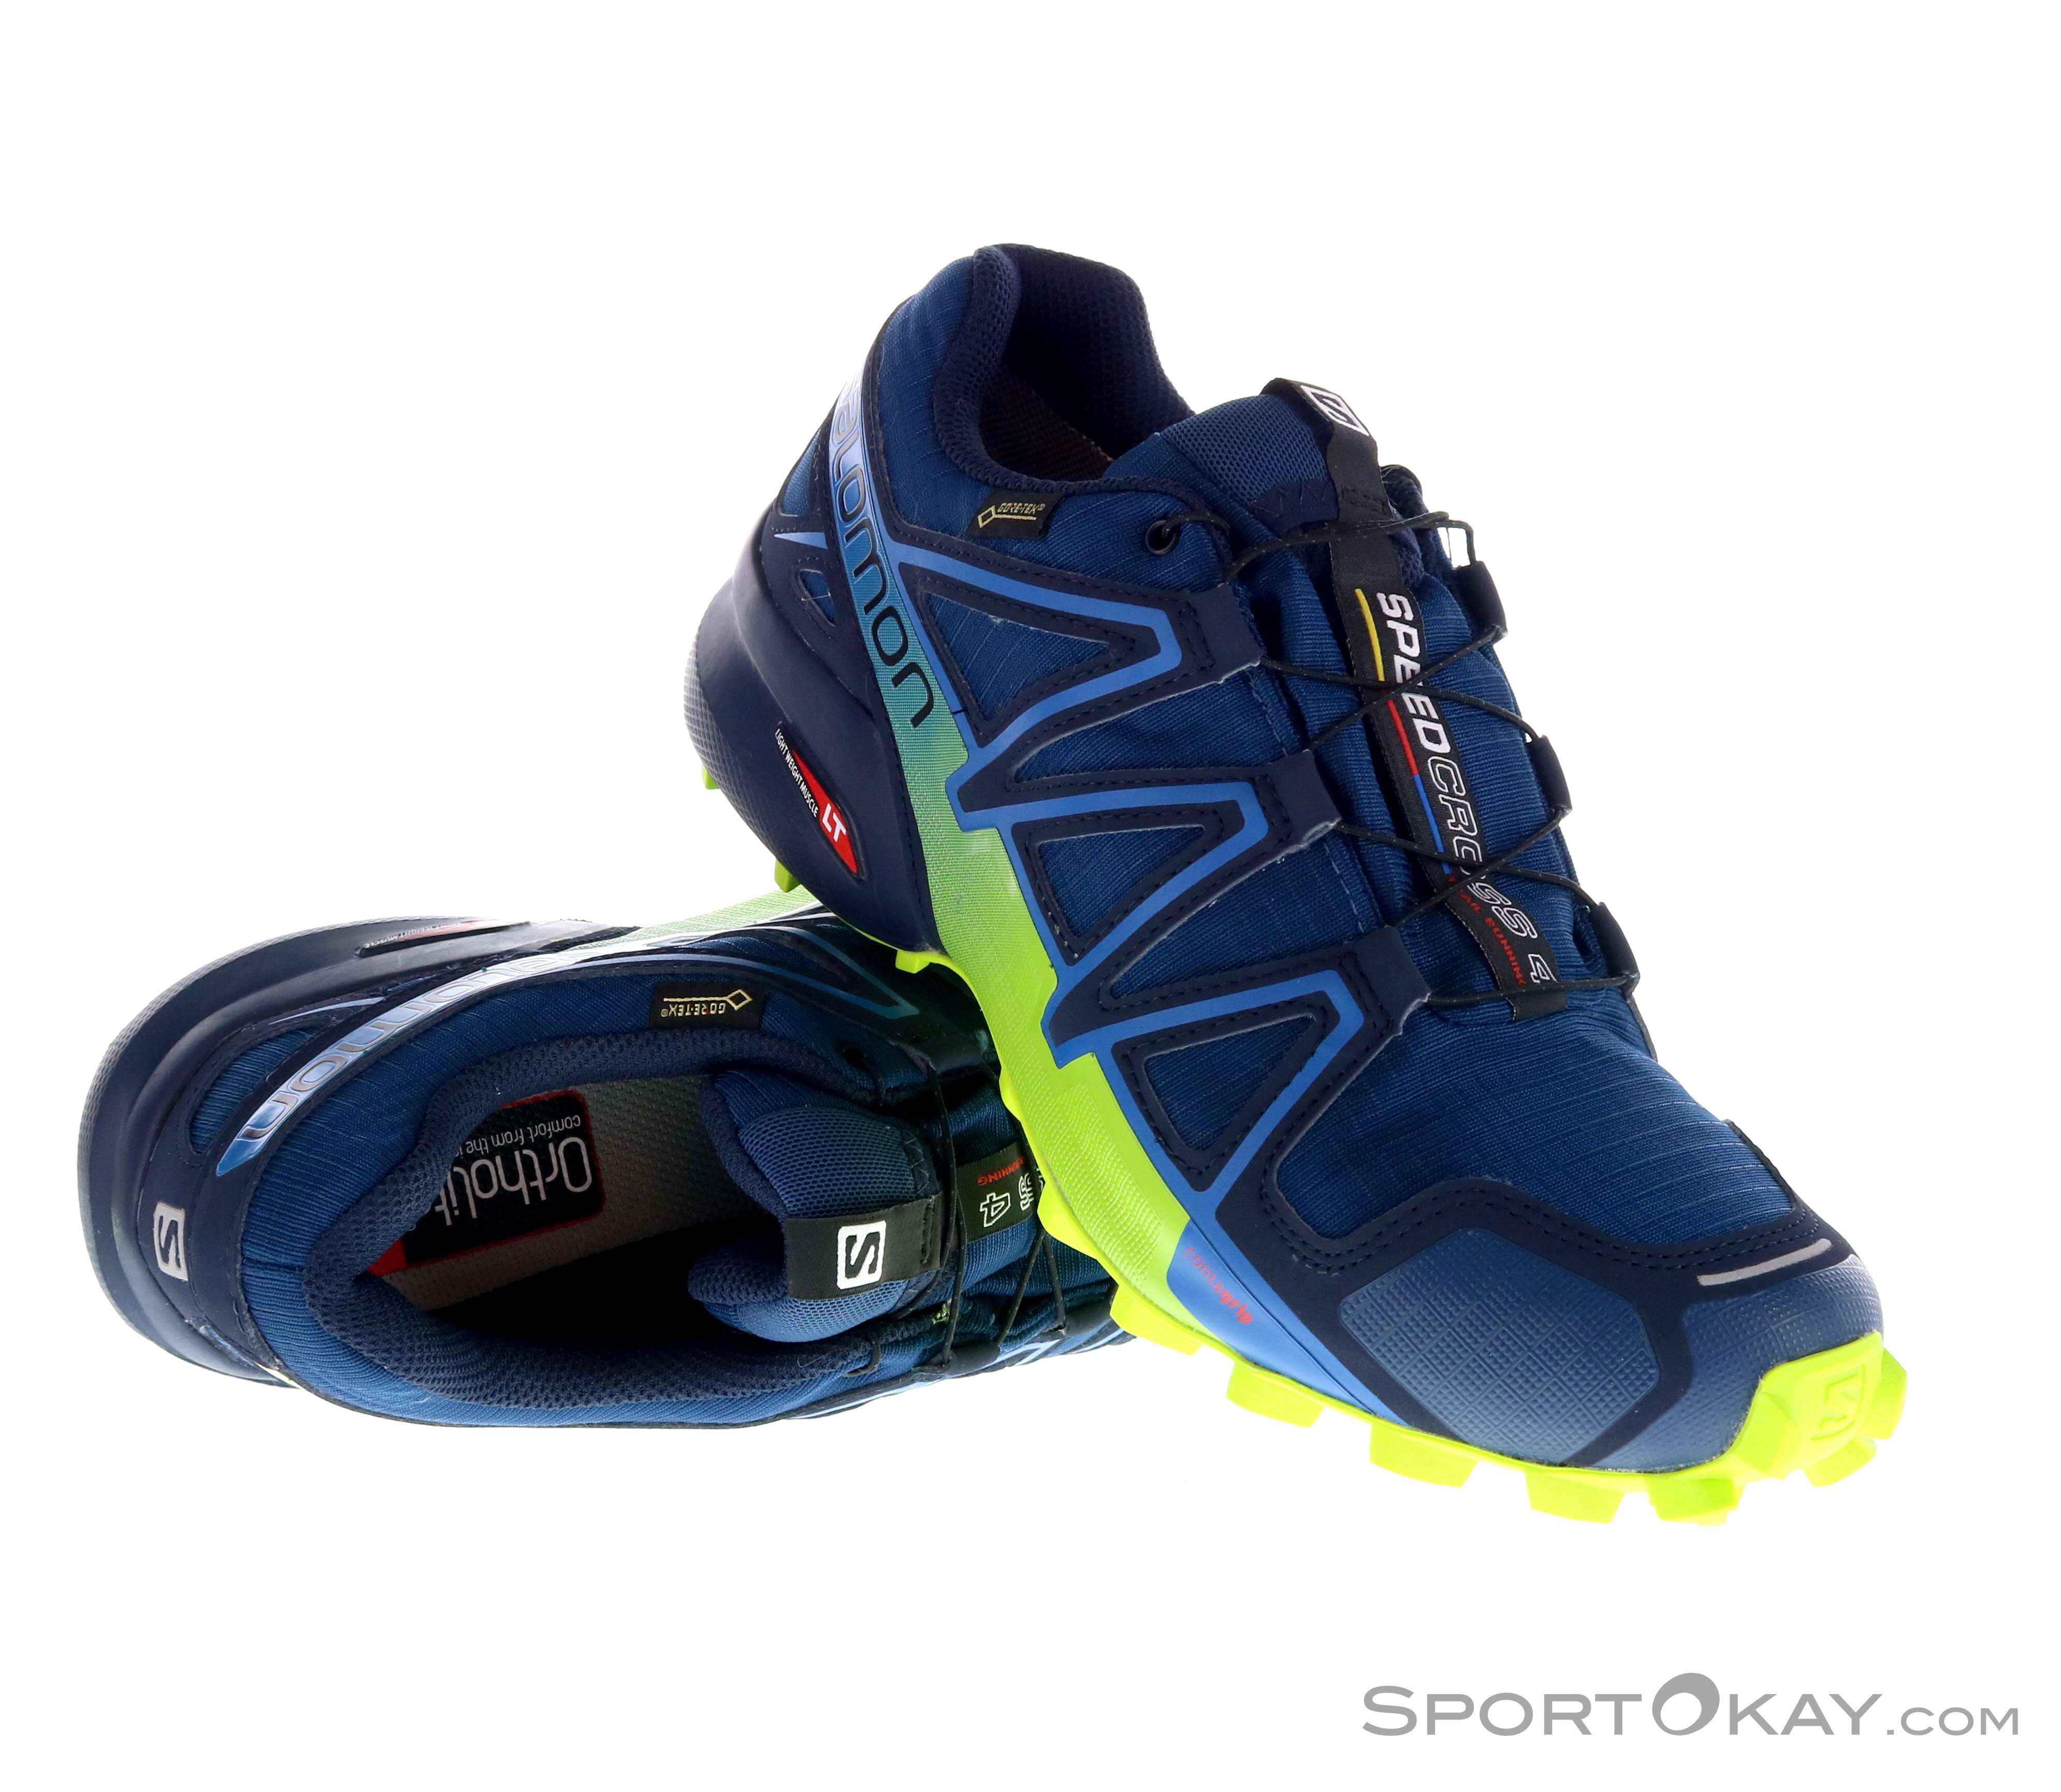 Salomon Speedcross 4 Uomo Scarpe da Trail Running Gore-Tex - Scarpe ... 94f1647741c